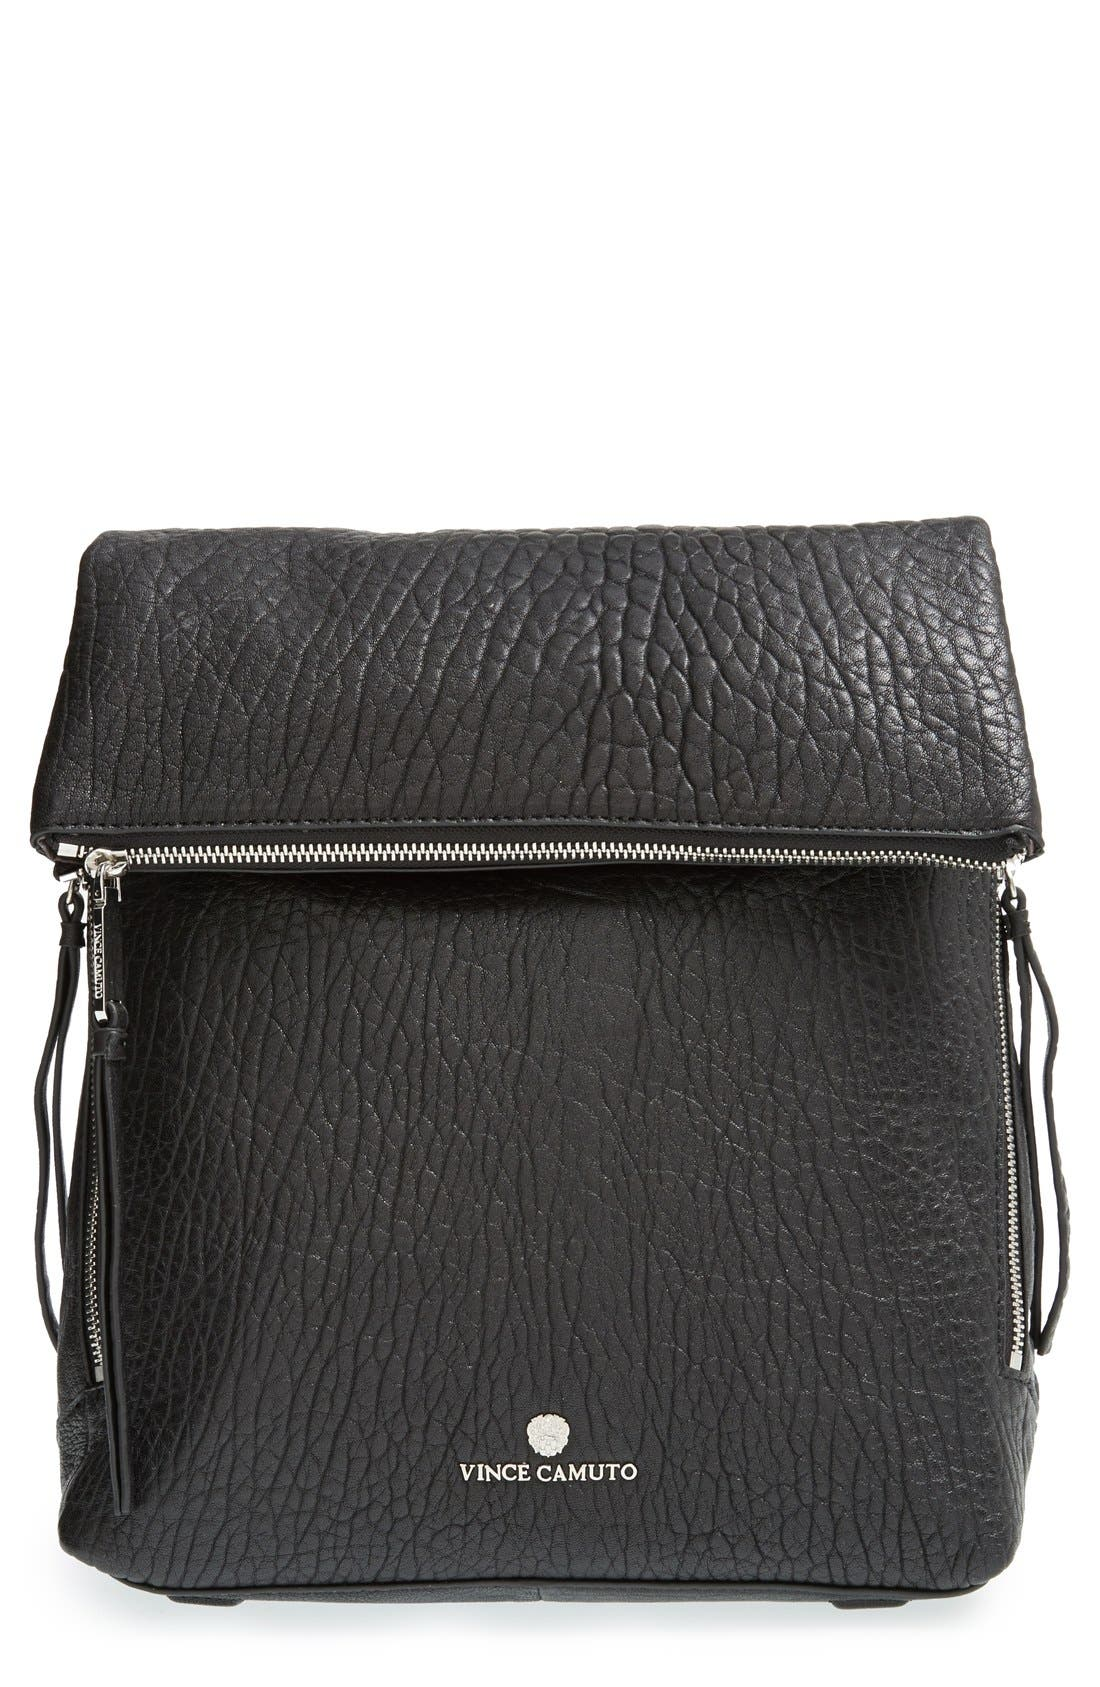 Main Image - Vince Camuto 'Paola' Backpack